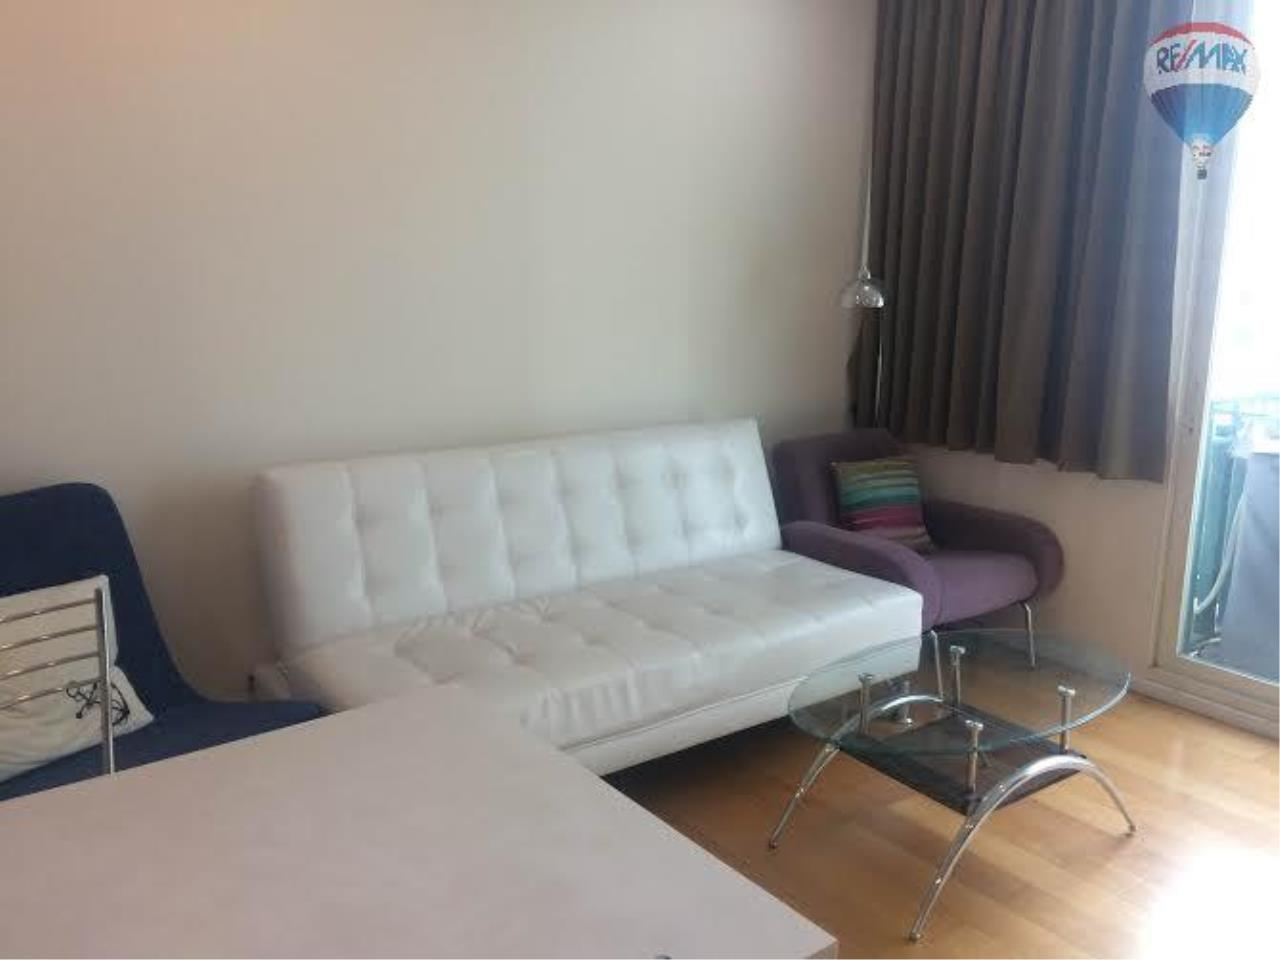 RE/MAX Properties Agency's 1 bedroom 51 Sq.M. for rent at Wind Sukhumvit 23  2